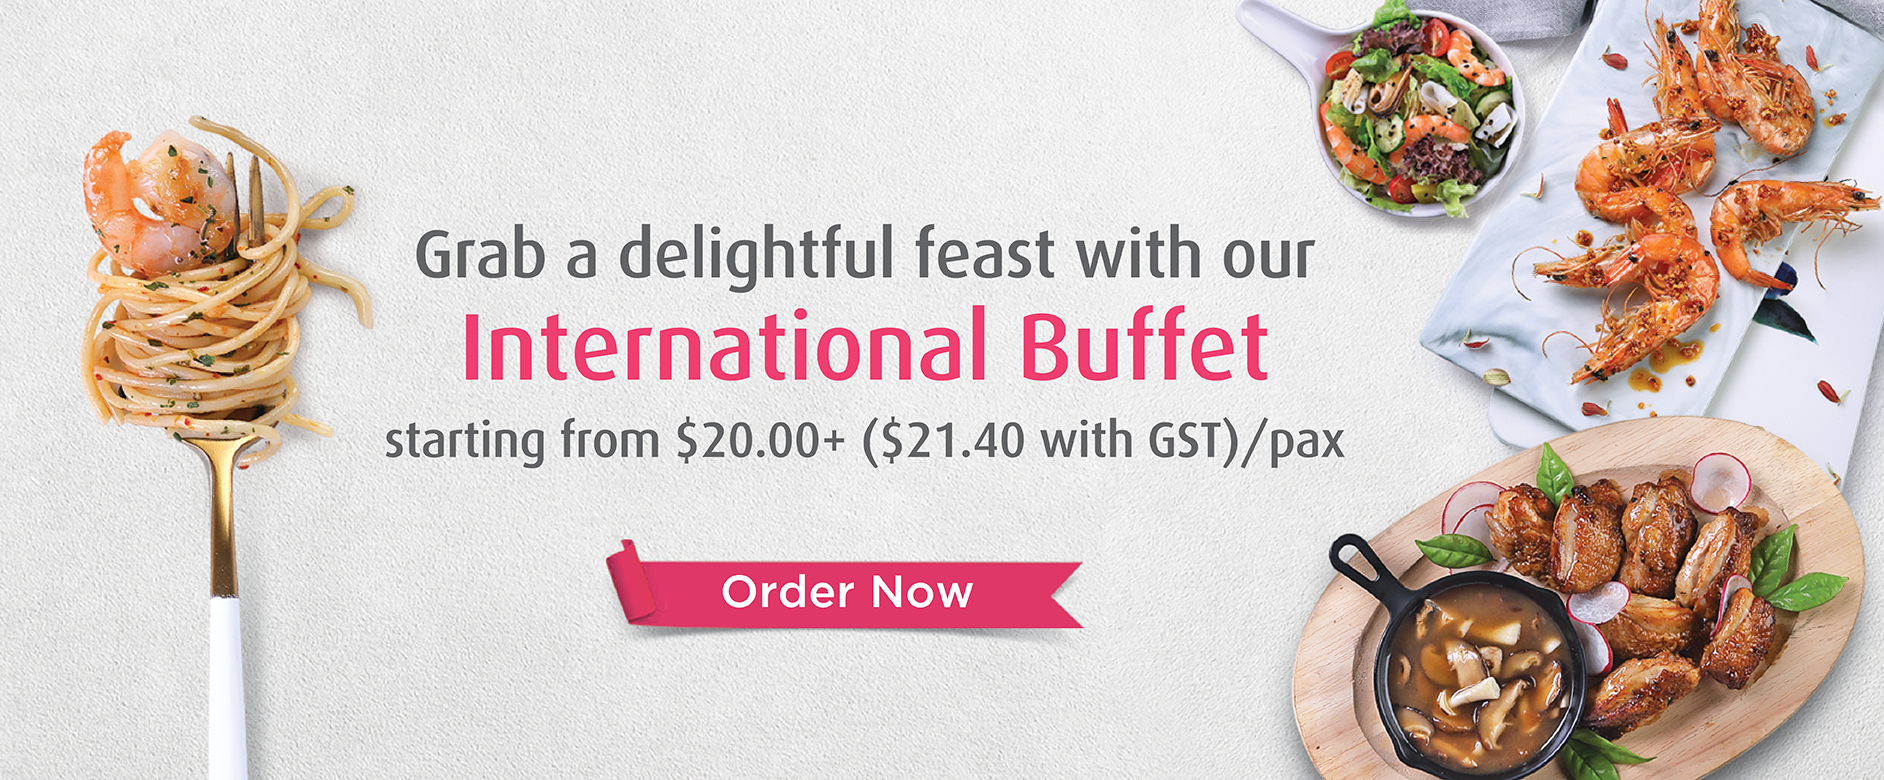 SC1903001-International-Buffet-Menu-Web-Banner-Mar-2019-FA-P